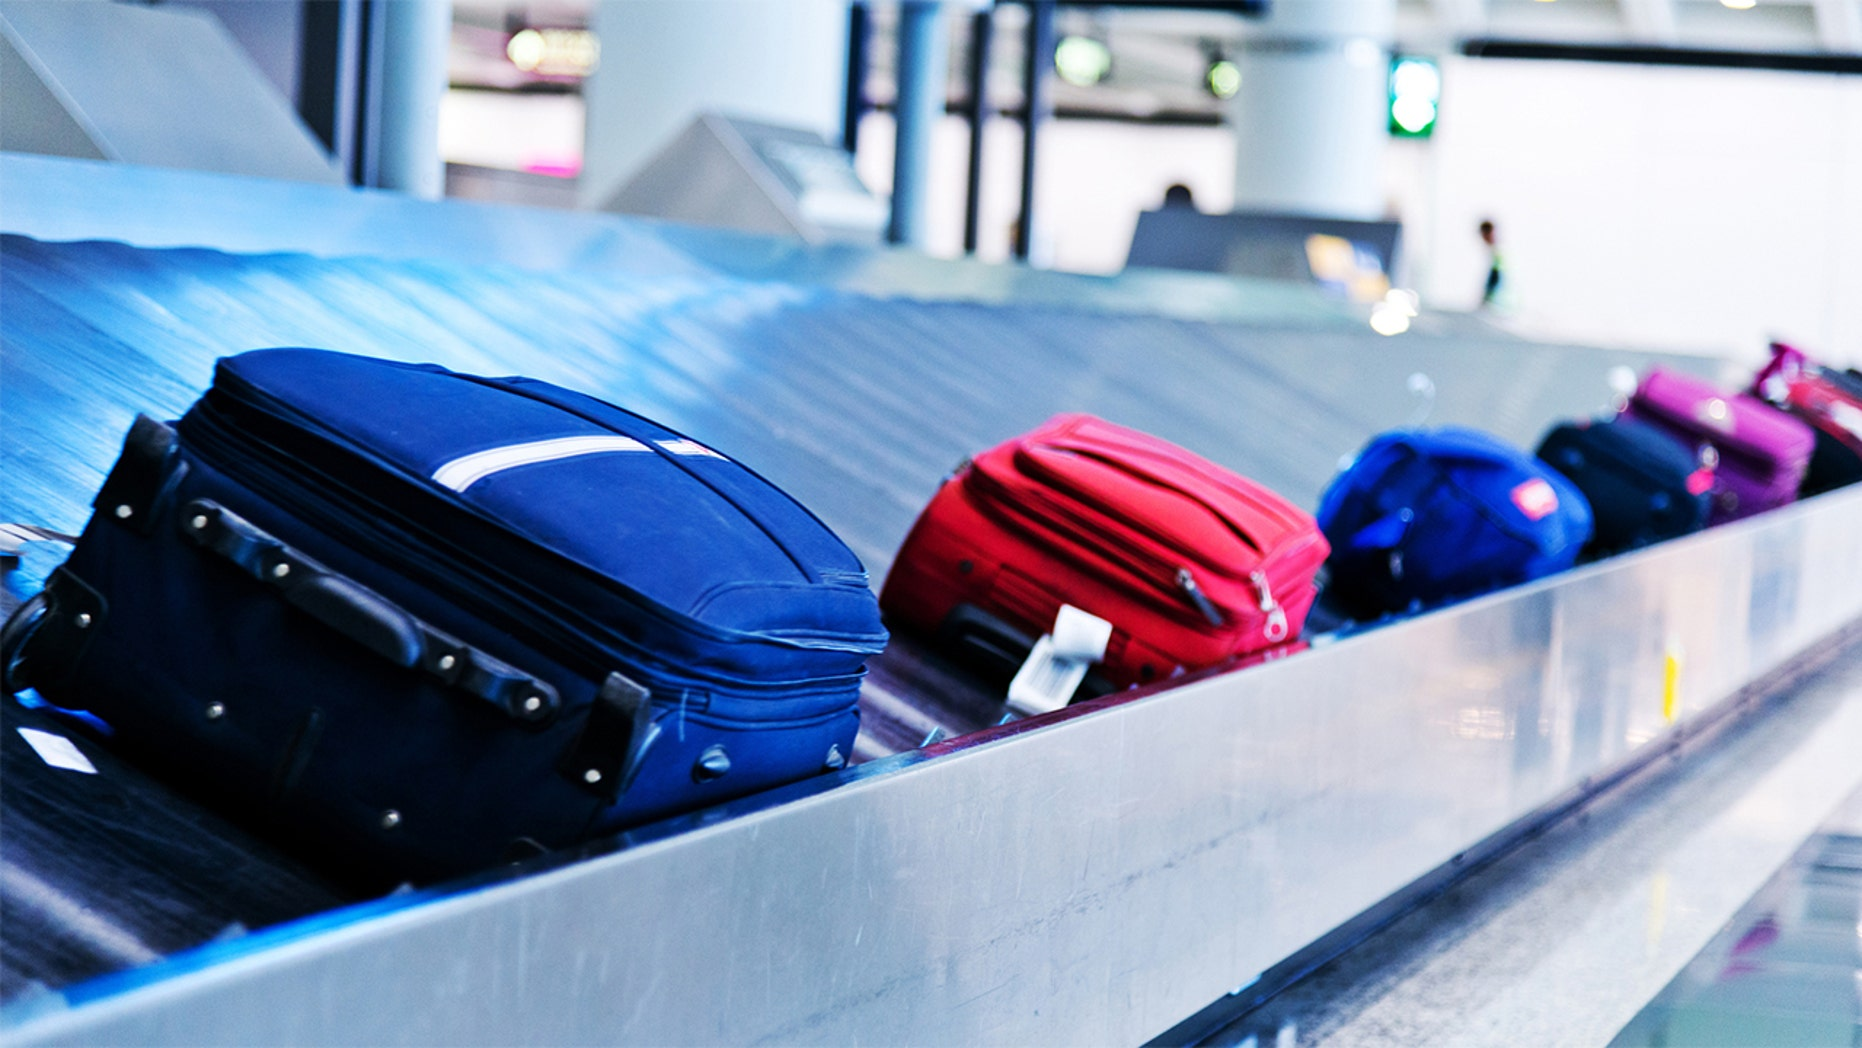 The couple has reached a settlement with Southwest Airlines over stinky bags.